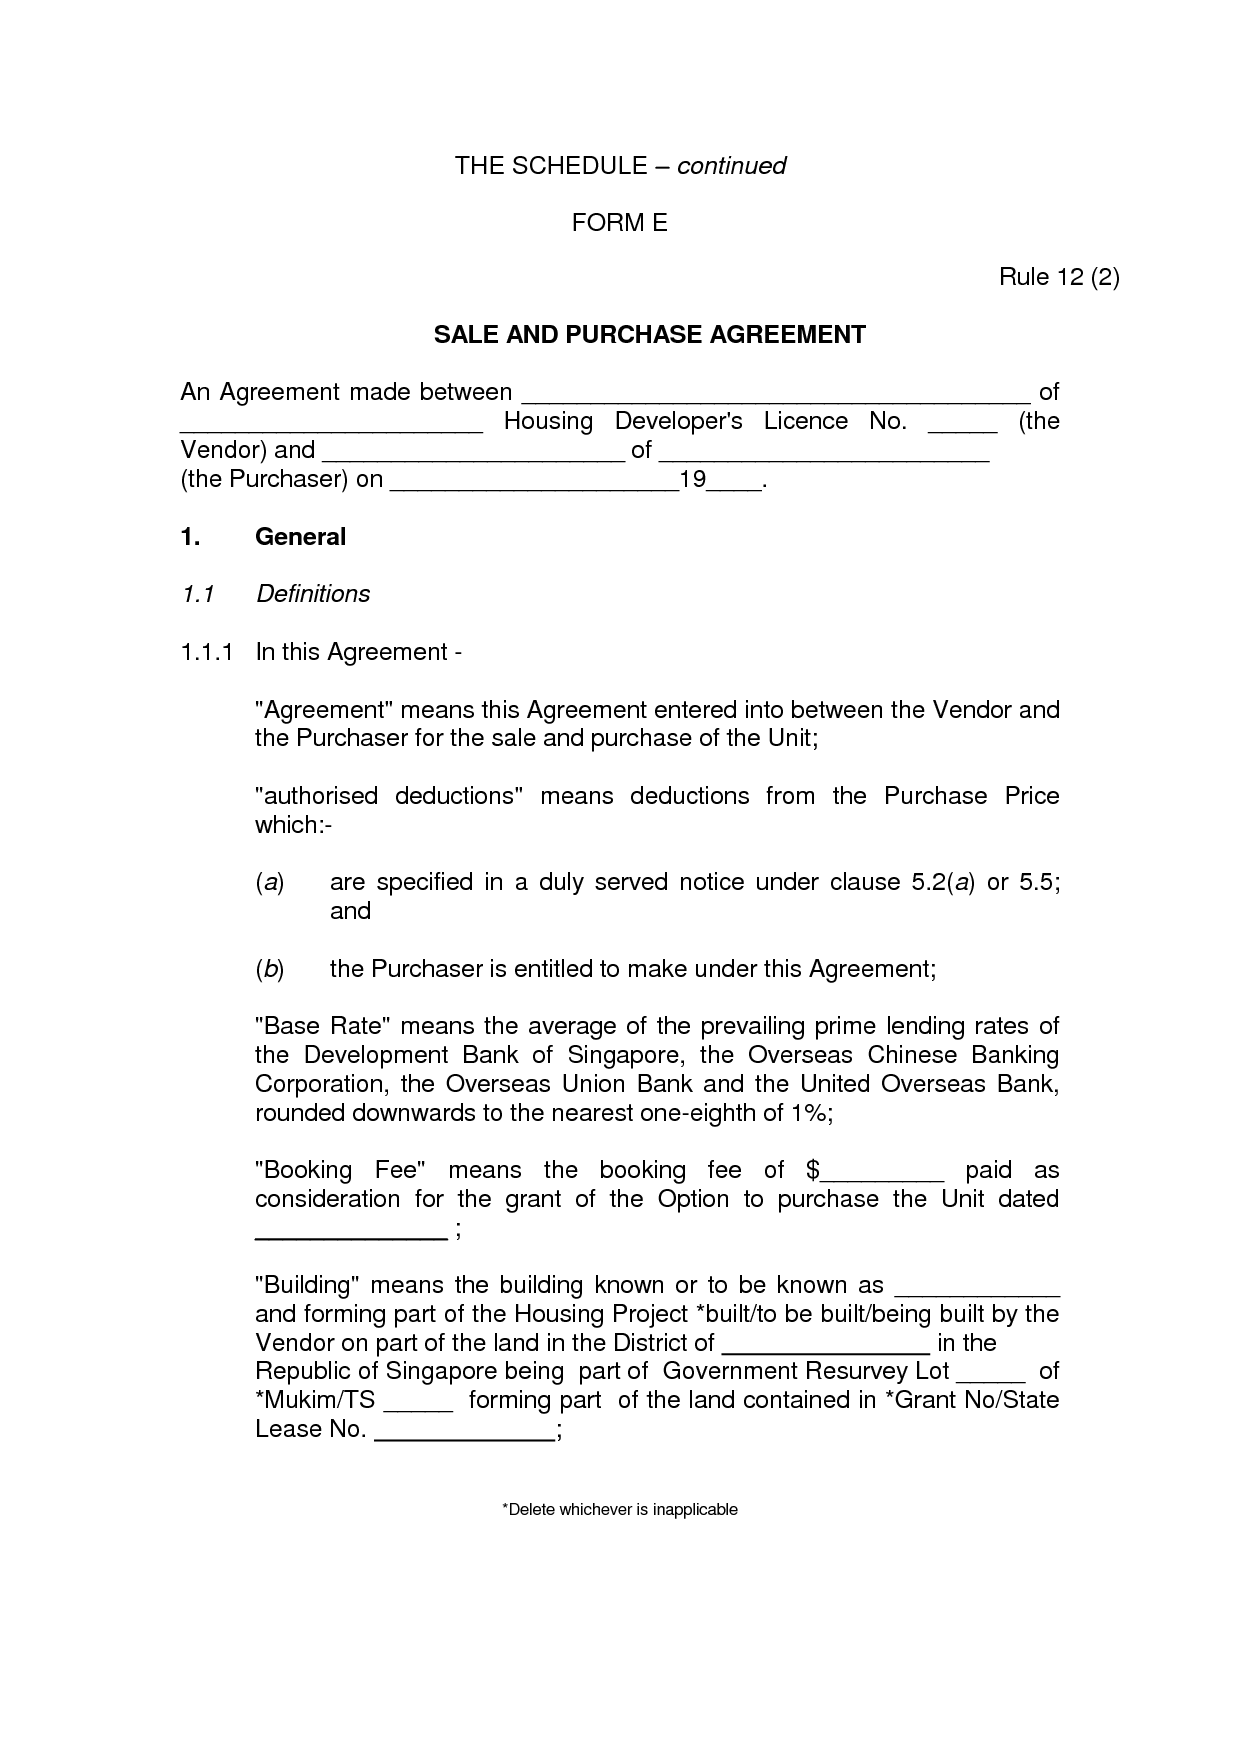 Private Party Car Purchase Agreement Simple by qeb64120 - simple ...